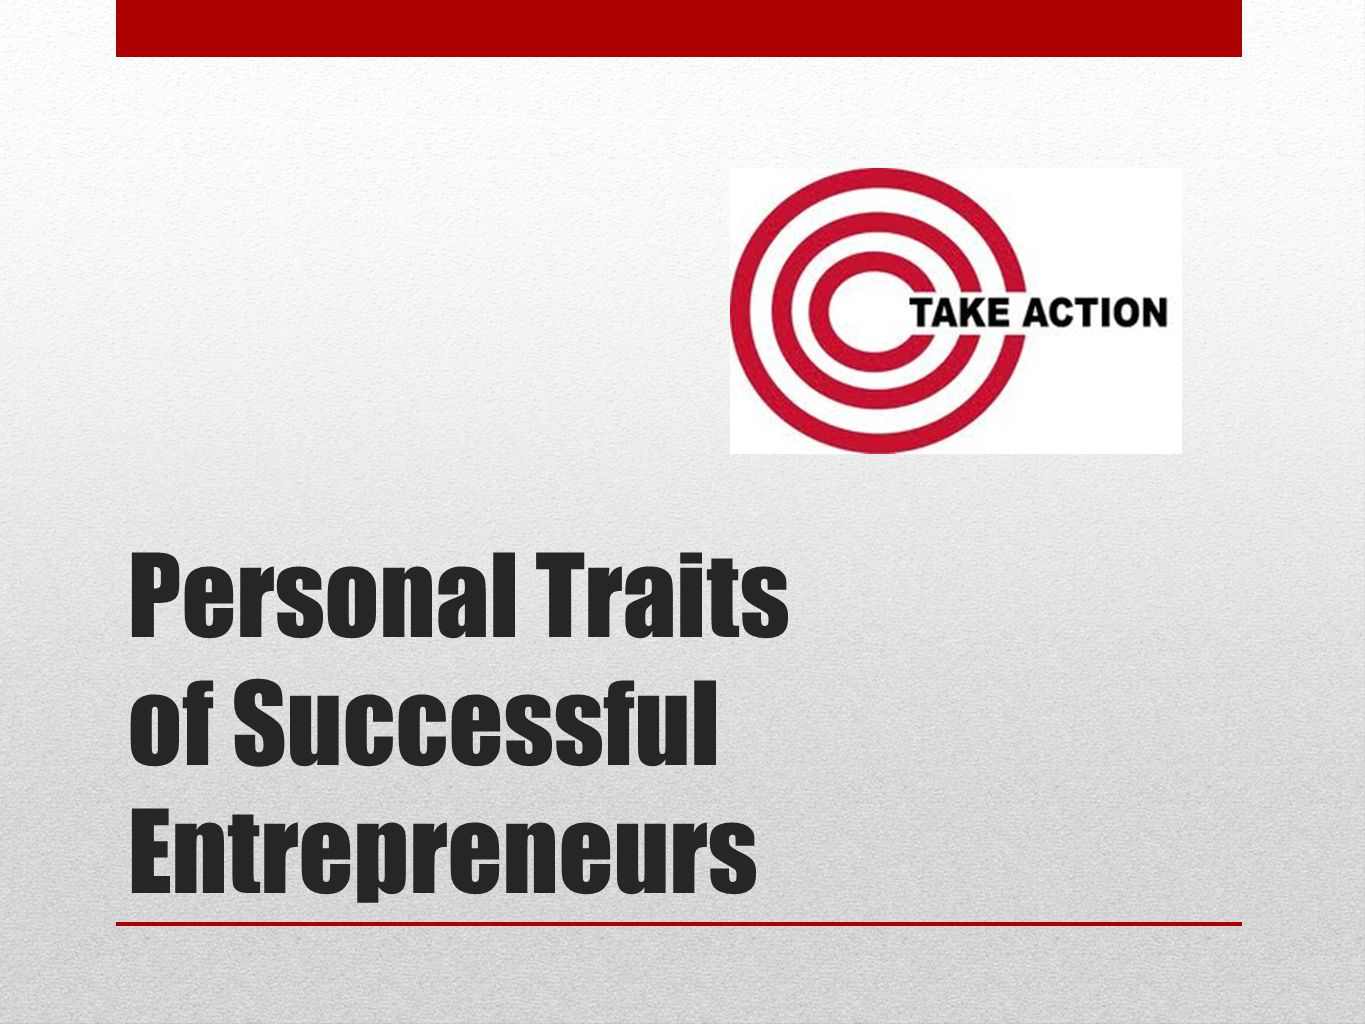 Personal Traits of Successful Entrepreneurs